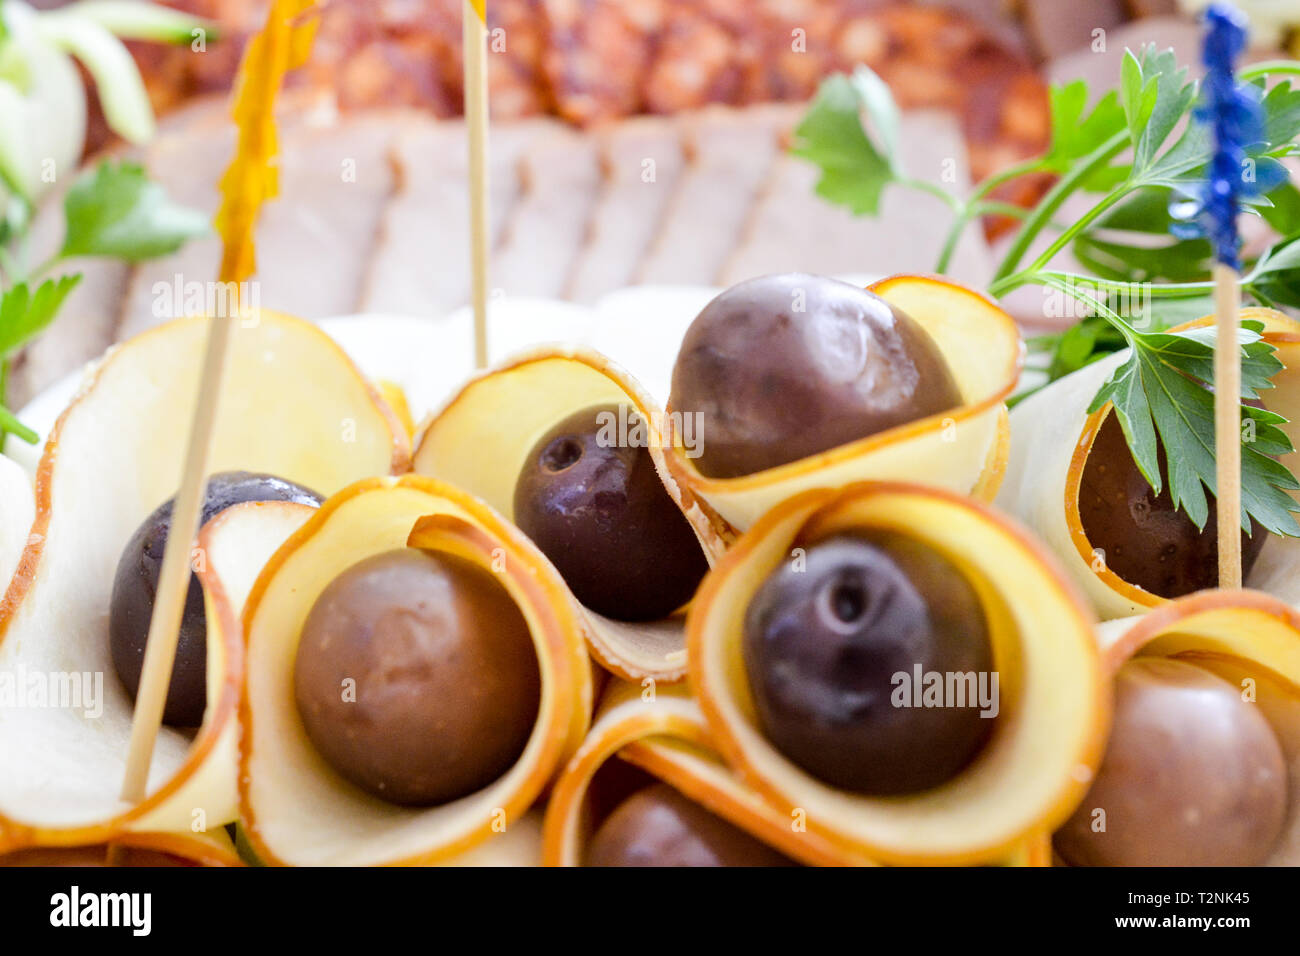 wll decorated party catering food,salami and olives - Stock Image